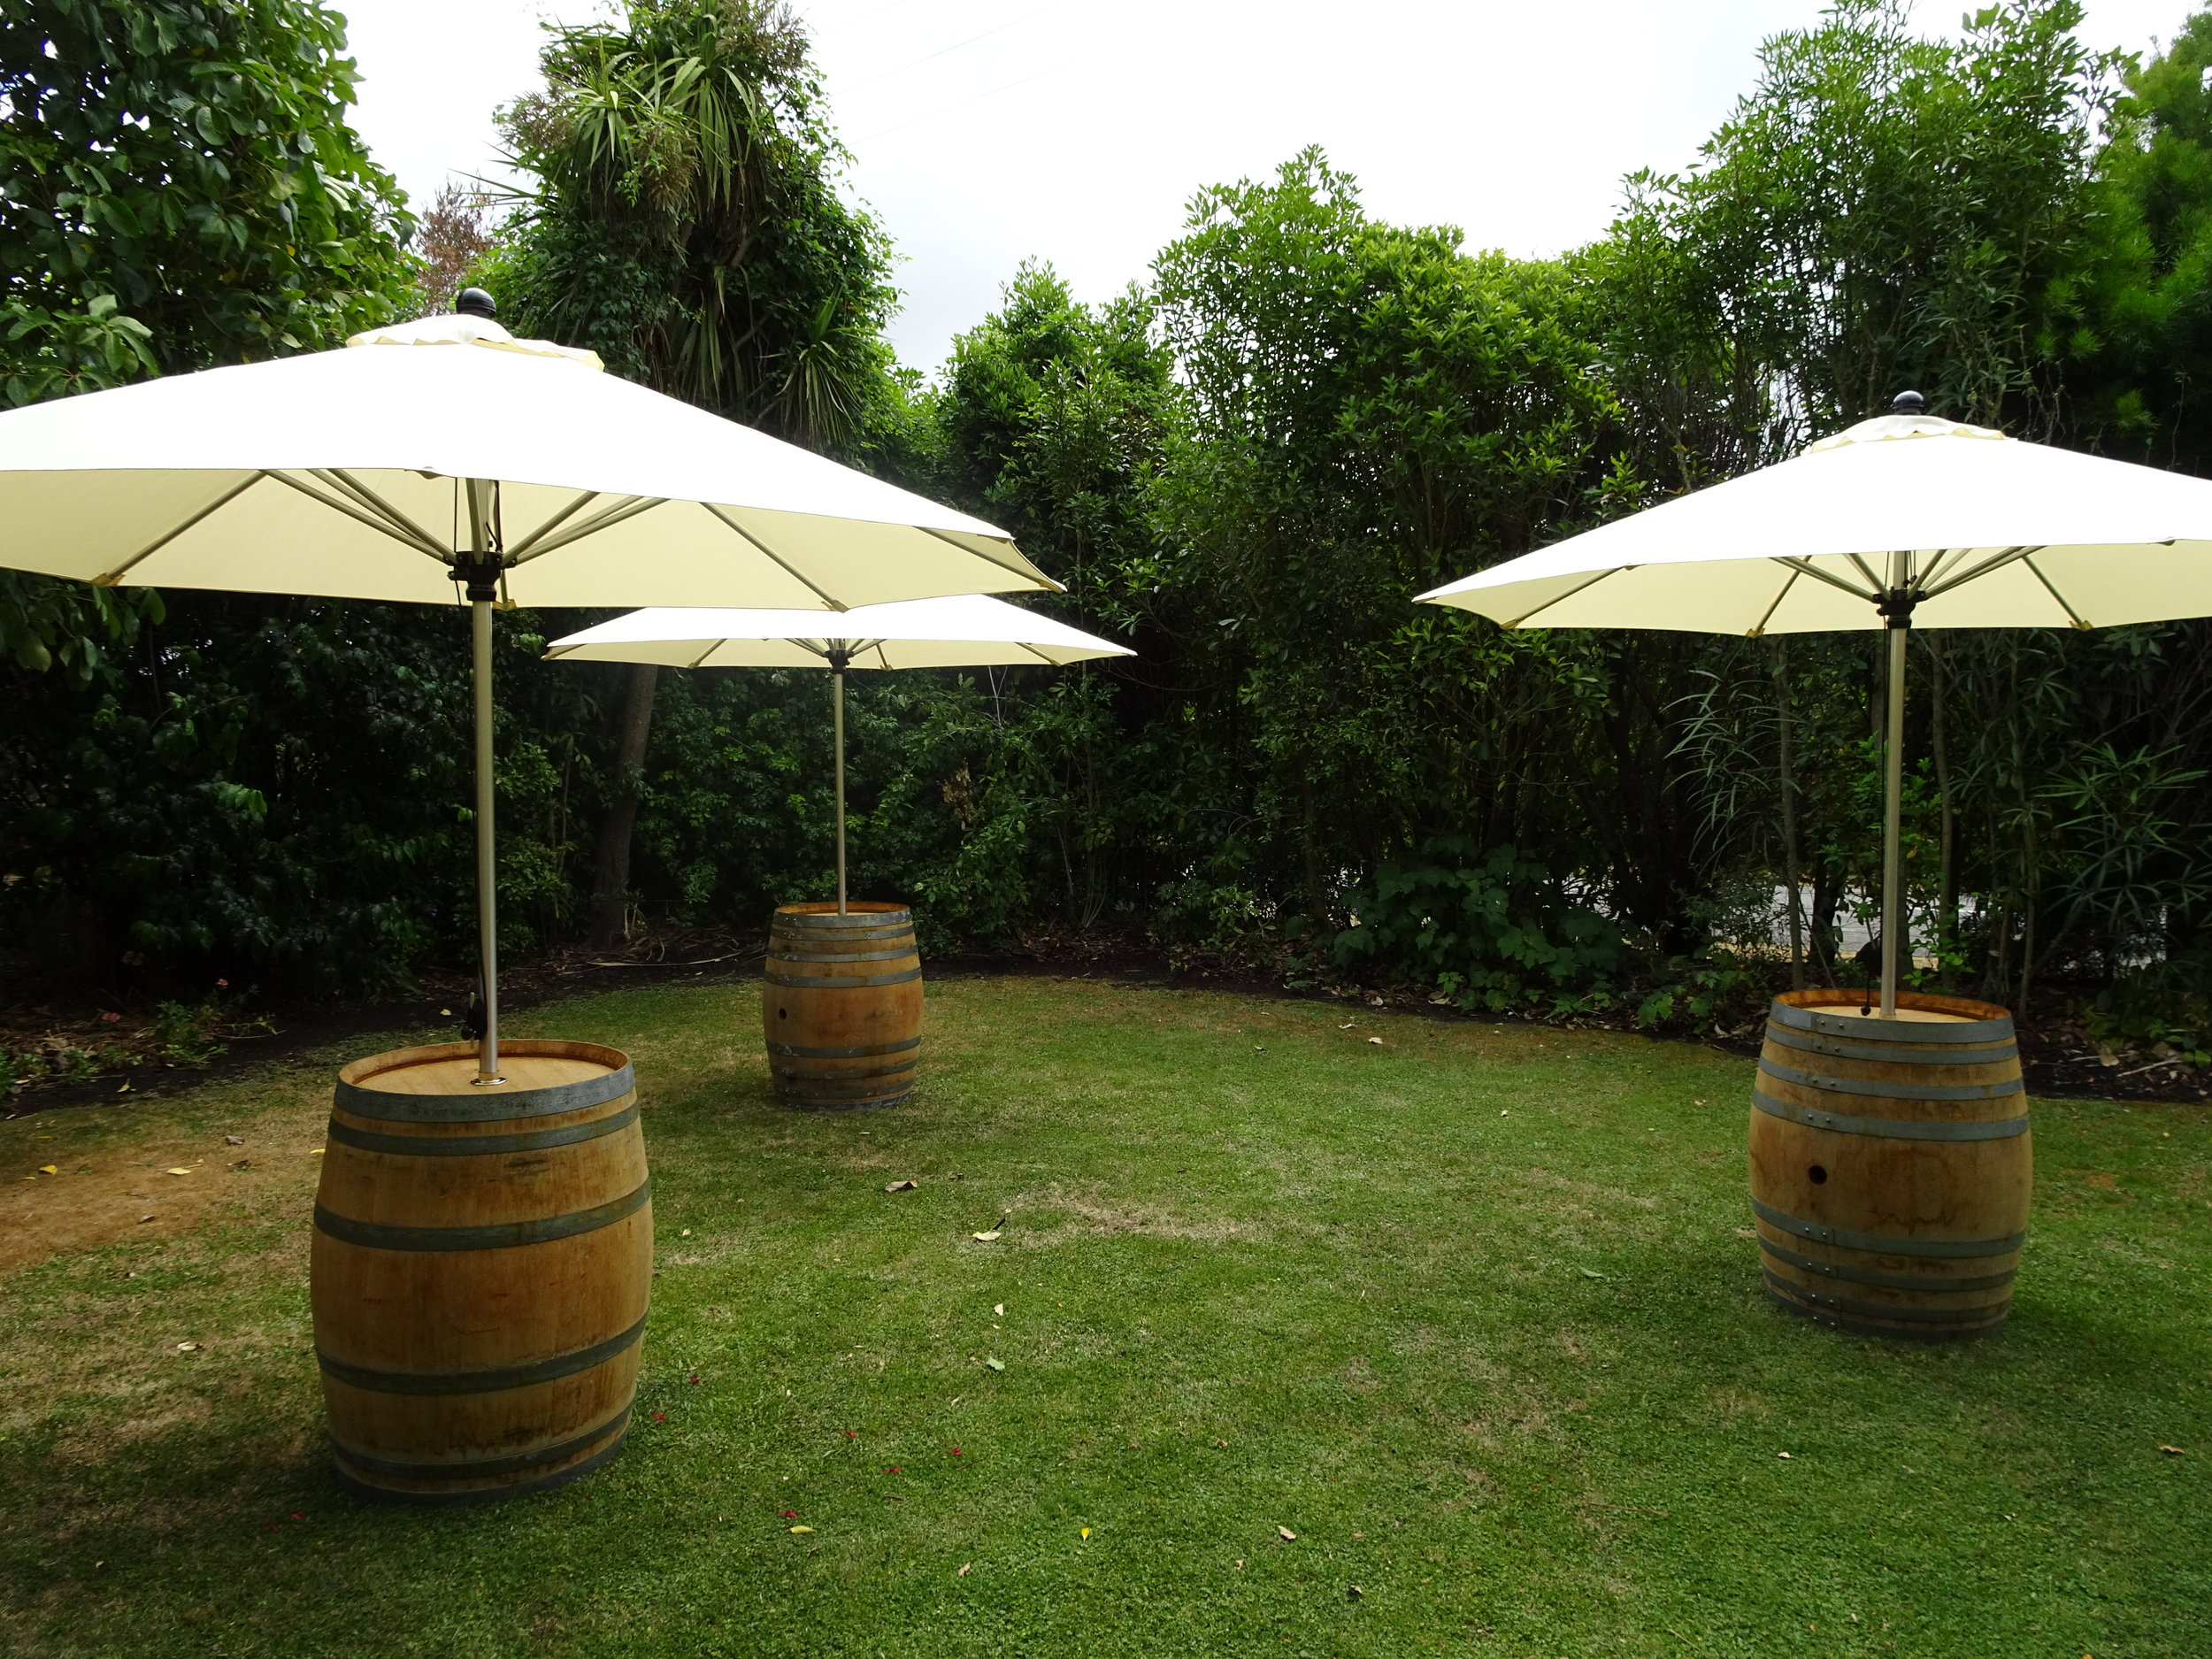 Market Umbrellas & Barrel Stands - Hire Umbrella $40 +GST, Barrel Stand $30 +GSTA stunning shade option for your event, providing additional space to rest your drinks. 12 umbrellas and 6 barrel stands available.Black Concrete Umbrella Stands also available for $10 +GST each or use our Wool Press Bar Leaners to hold the umbrellas.